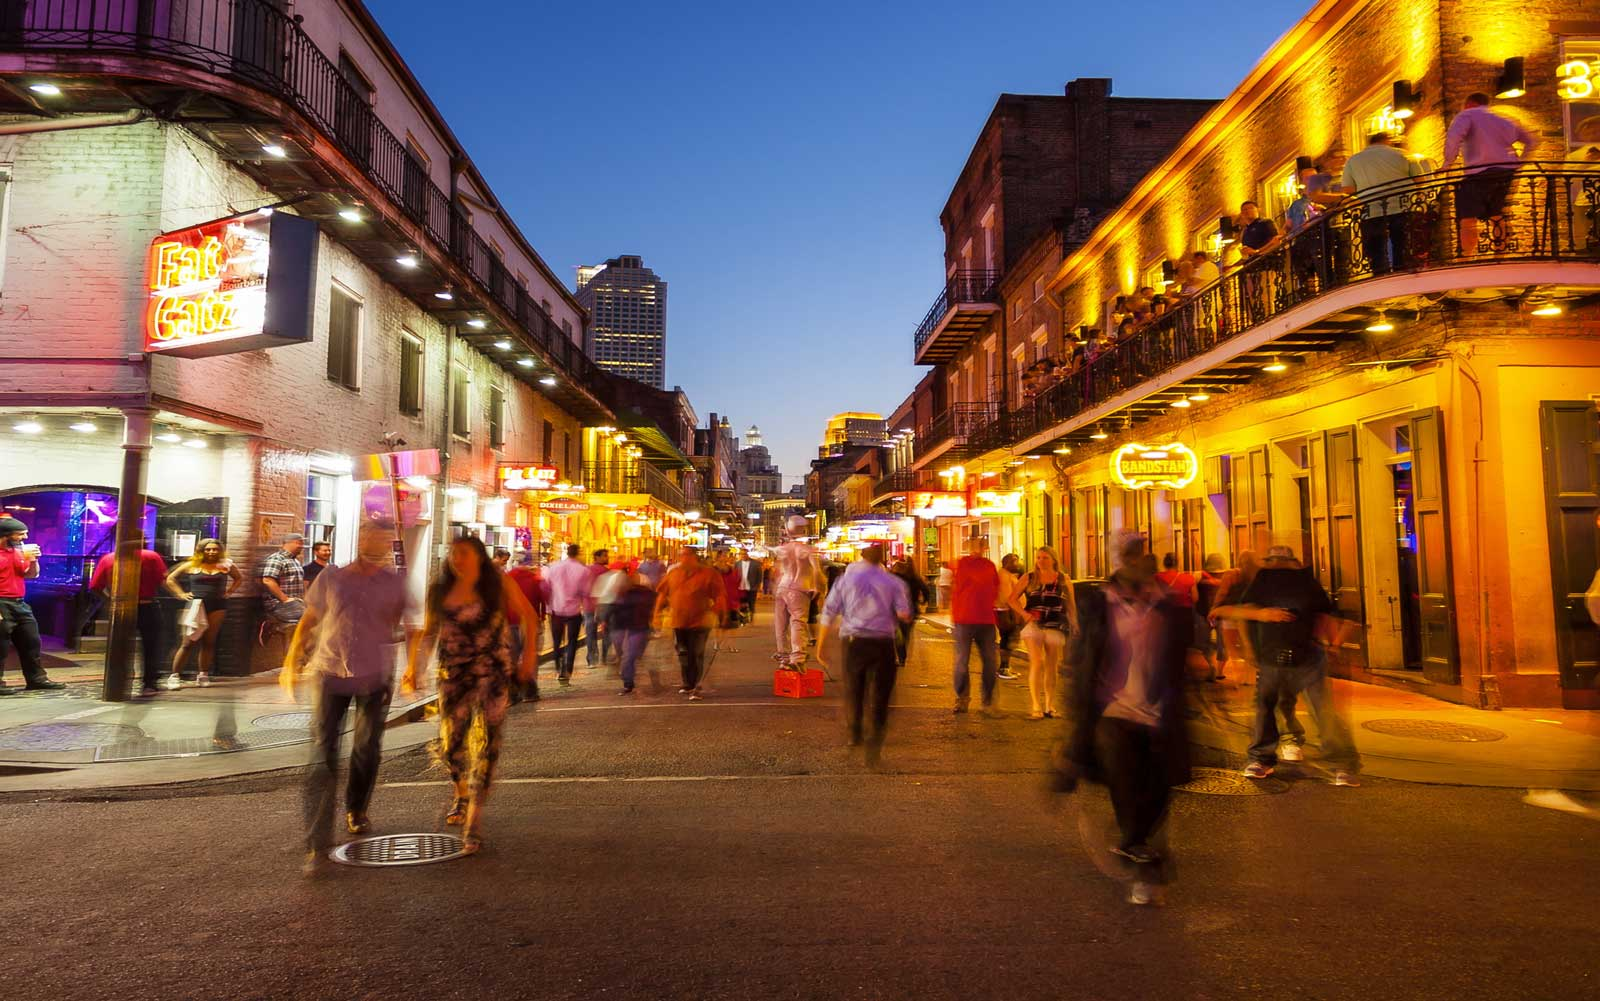 Bourbon Street at Night, The French Quarter of New Orleans